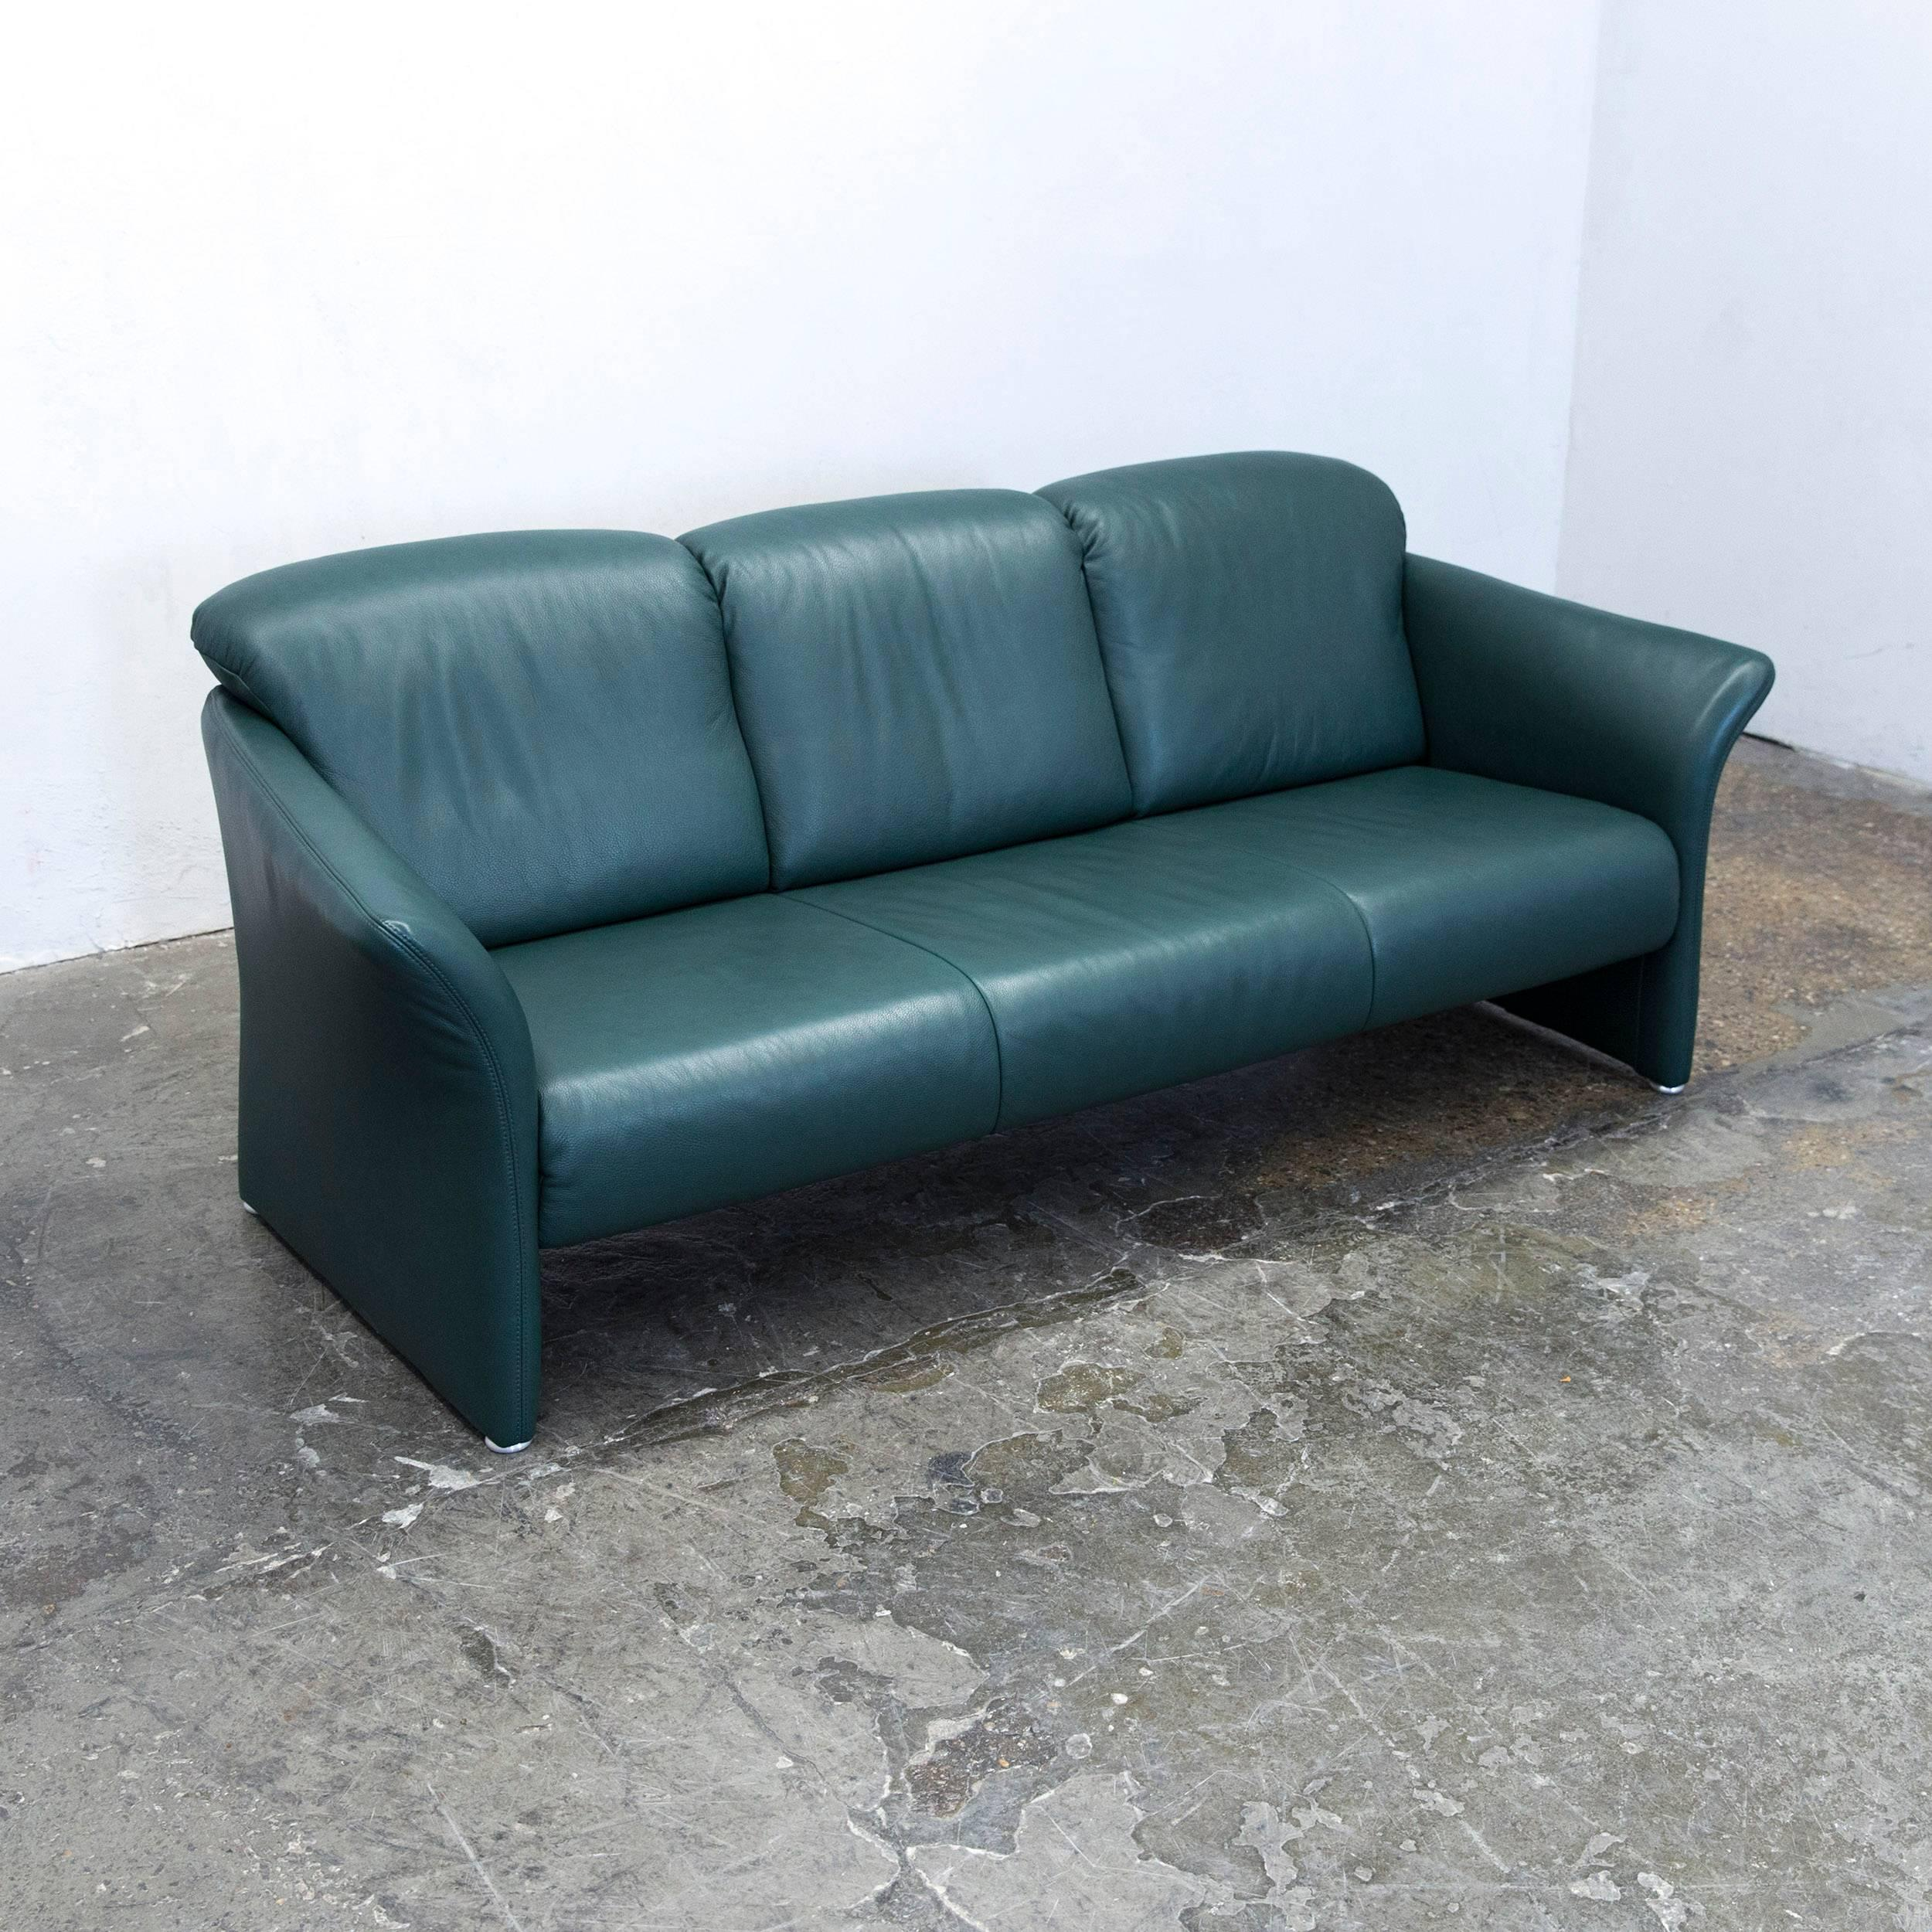 German Koinor Designer Sofa Set Leather Green Three Seat Couch Modern For  Sale Nice Look